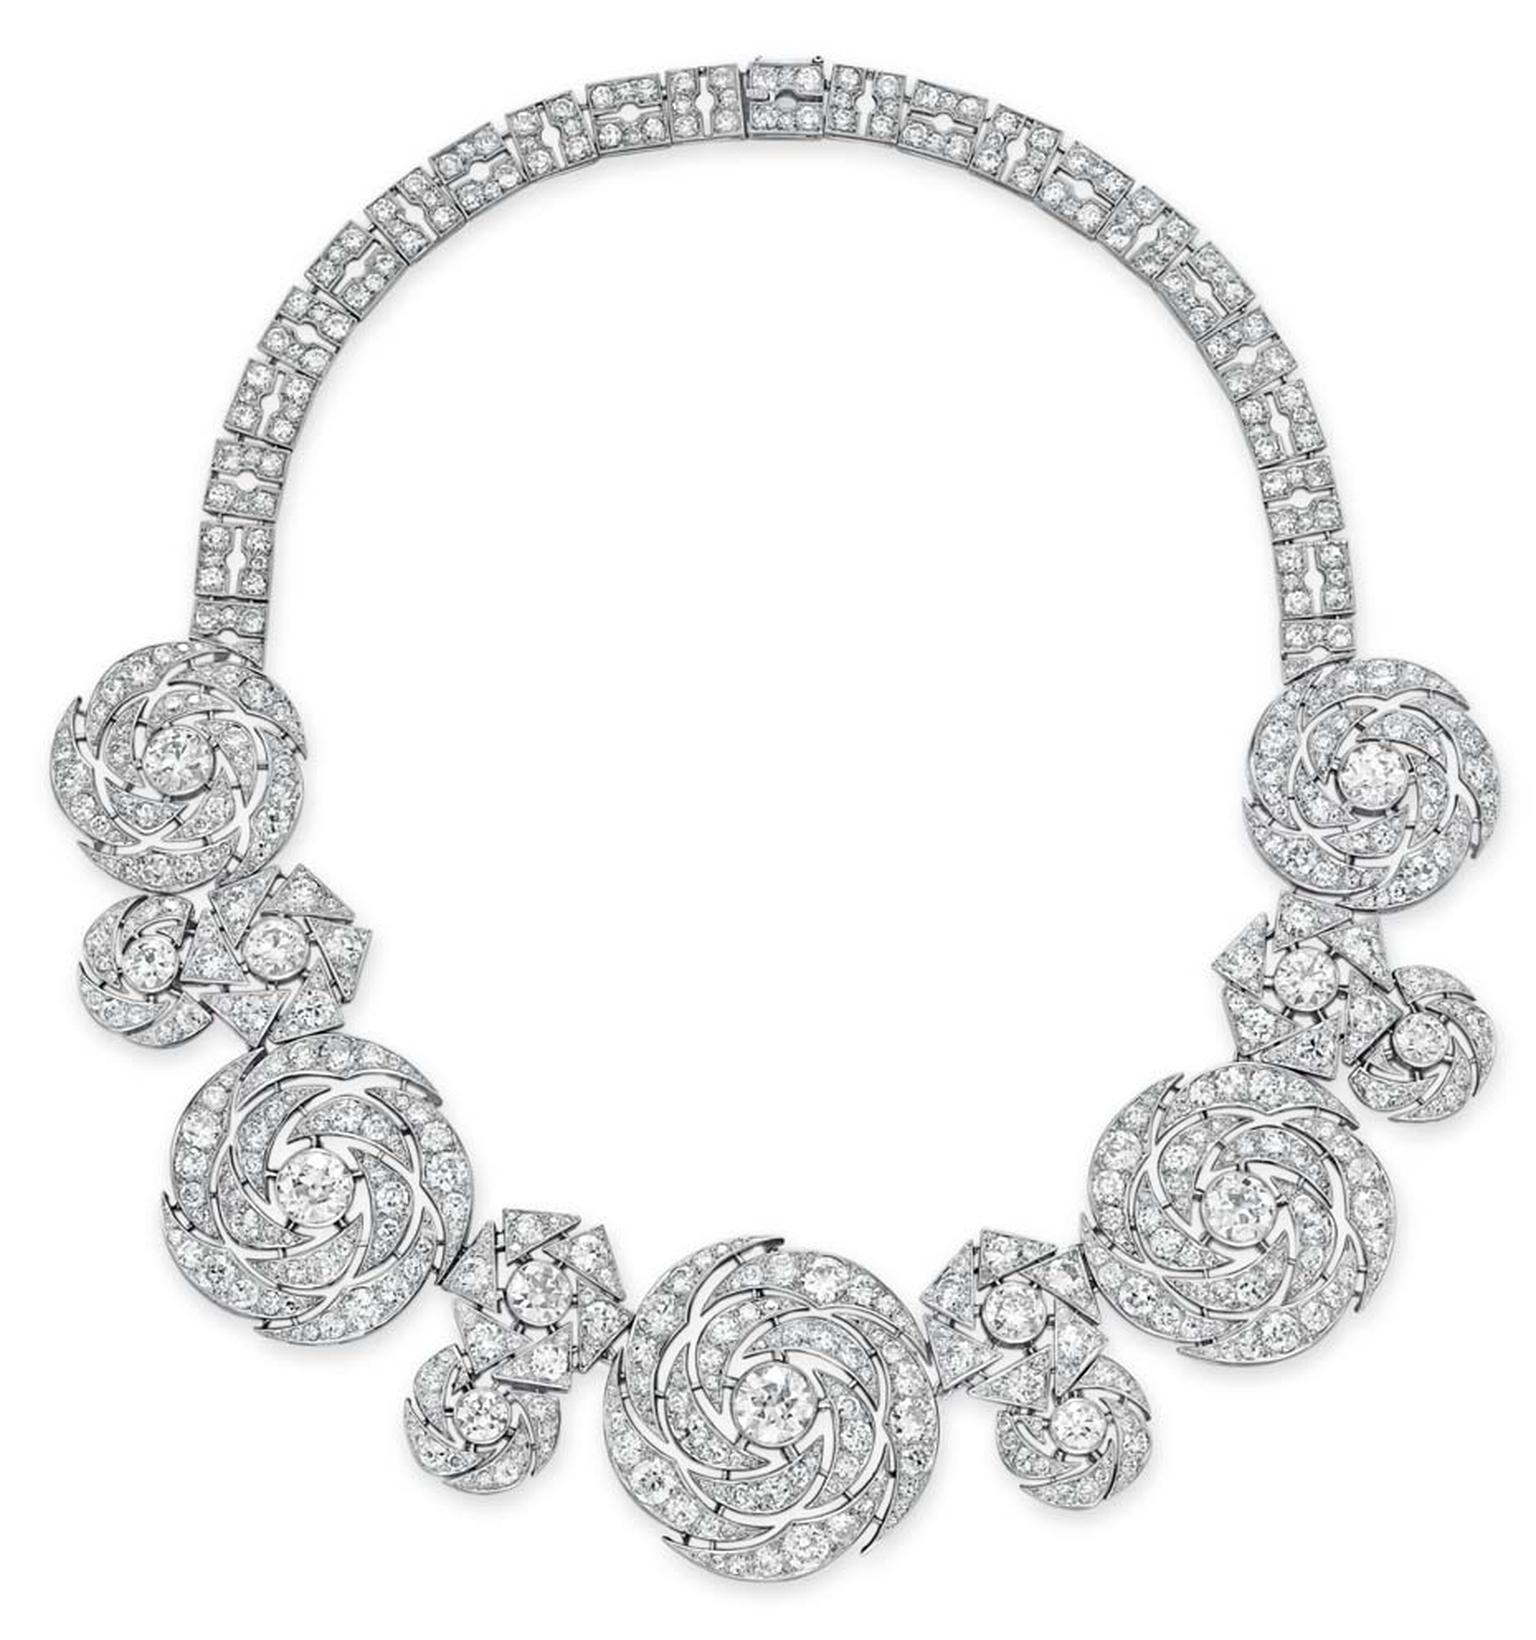 Lot 230, a diamond necklace by Cartier, designed a a series of graduated openwork old European and single-cut diamond swirling plaques in platinum, circa 1942 (estimate: US$450-650,000)